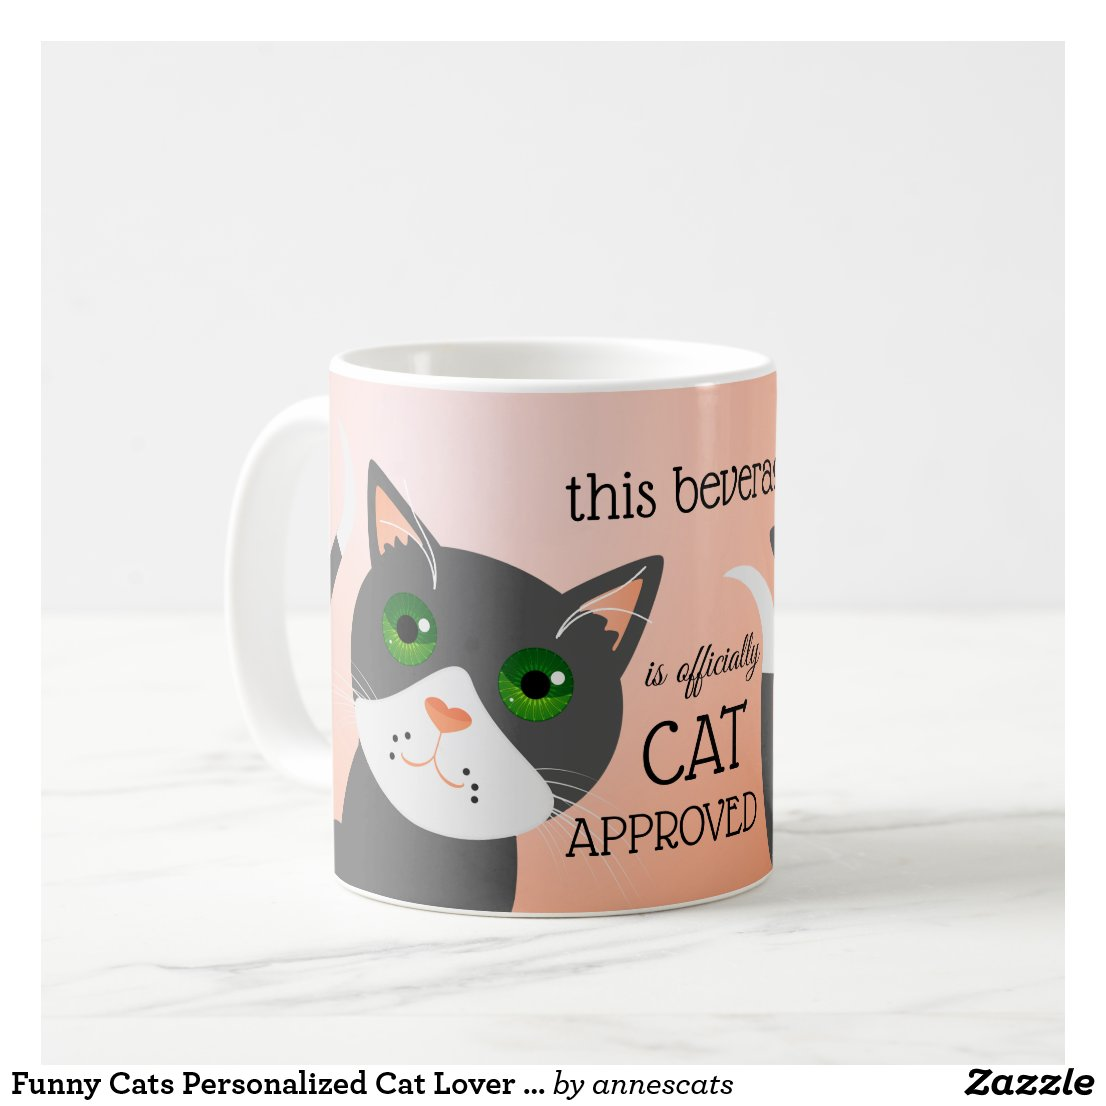 Funny Cats Personalized Cat Lover Mug